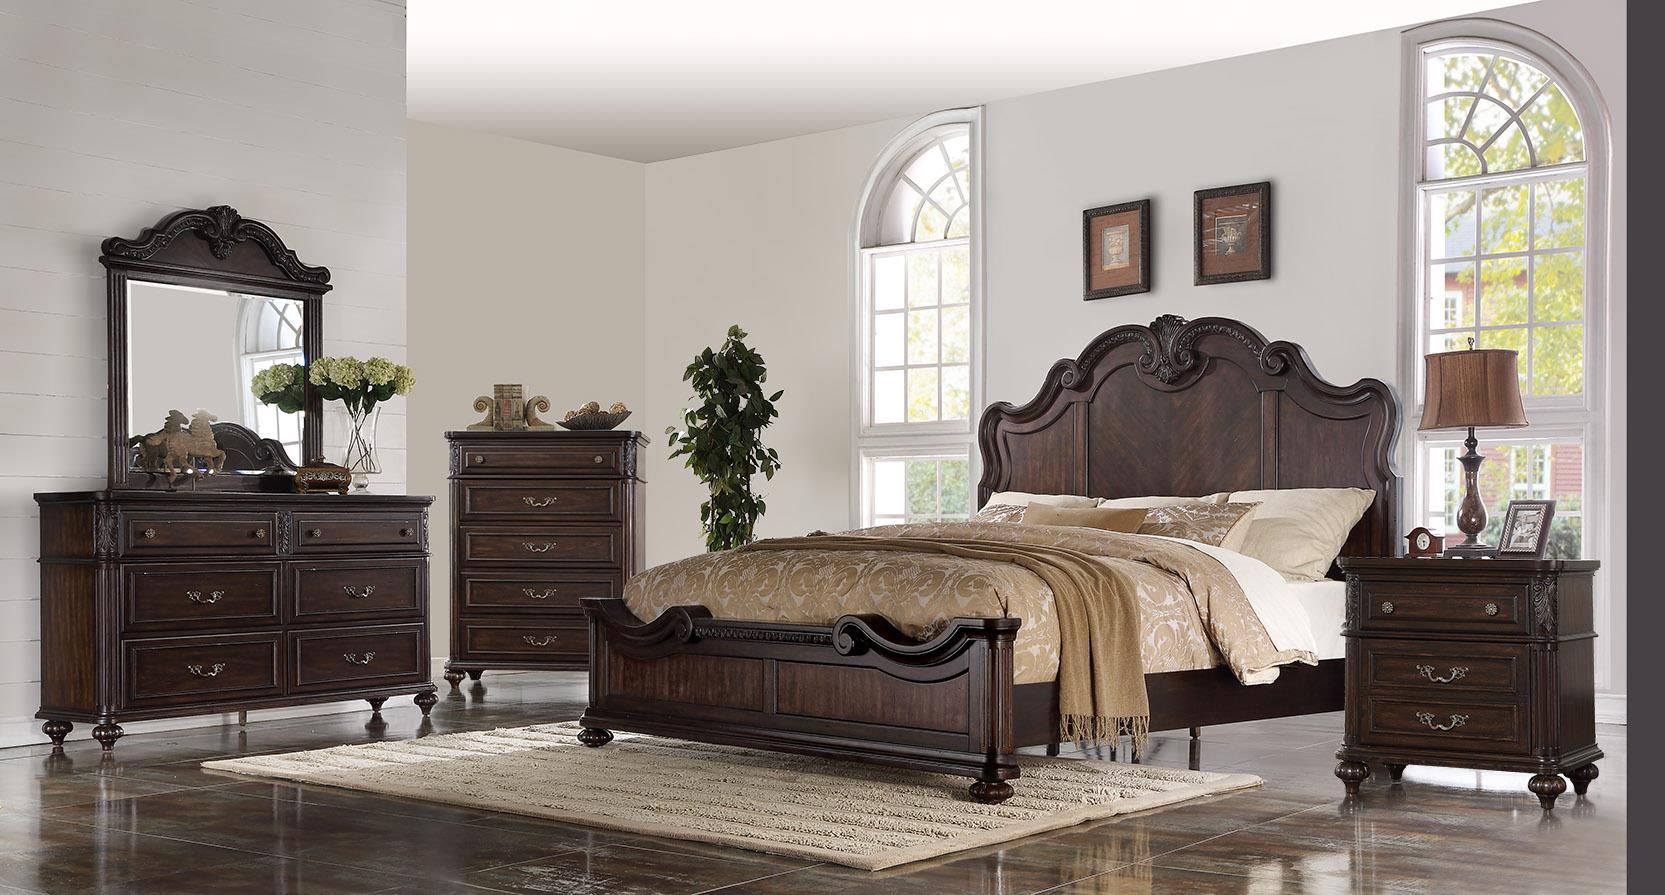 1610 Queen 5 Piece Bedroom Set  $1559